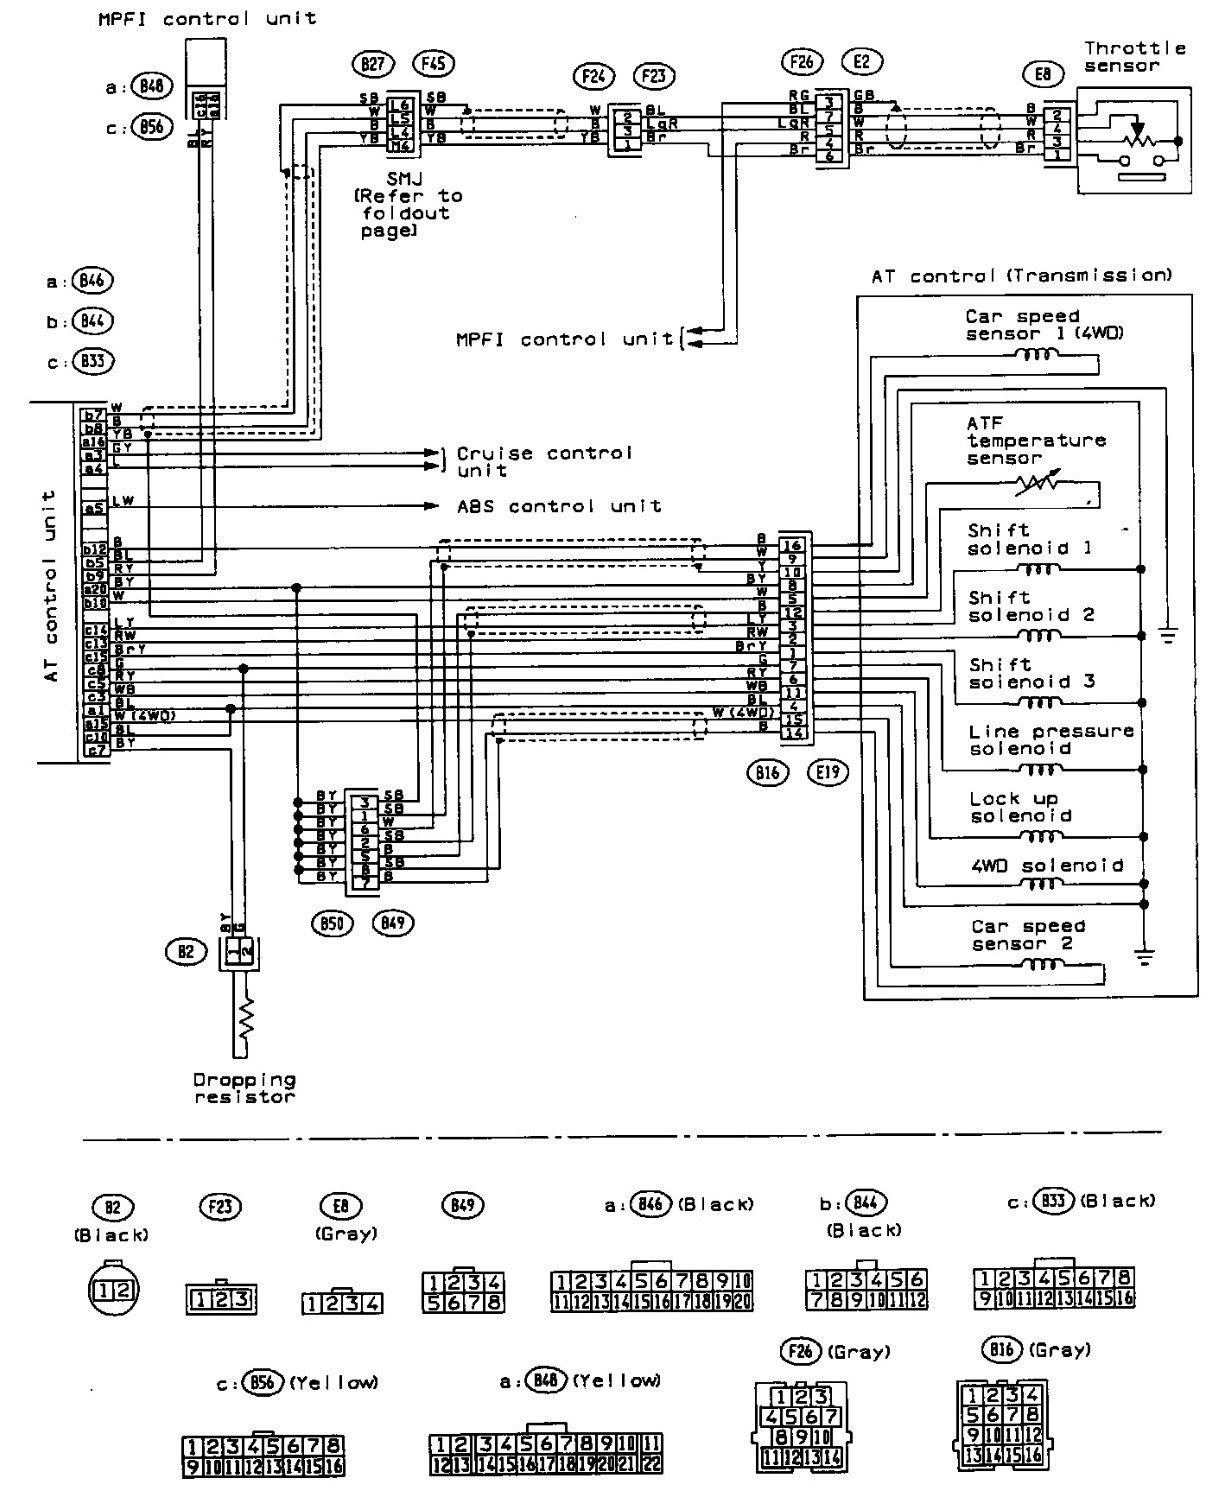 DIAGRAMME} 1996 Subaru Wiring Diagram FULL Version HD Quality Wiring Diagram  - REMYELECTRICMOTORS.WEBGIF.ITWiring Diagram - Webgif.it